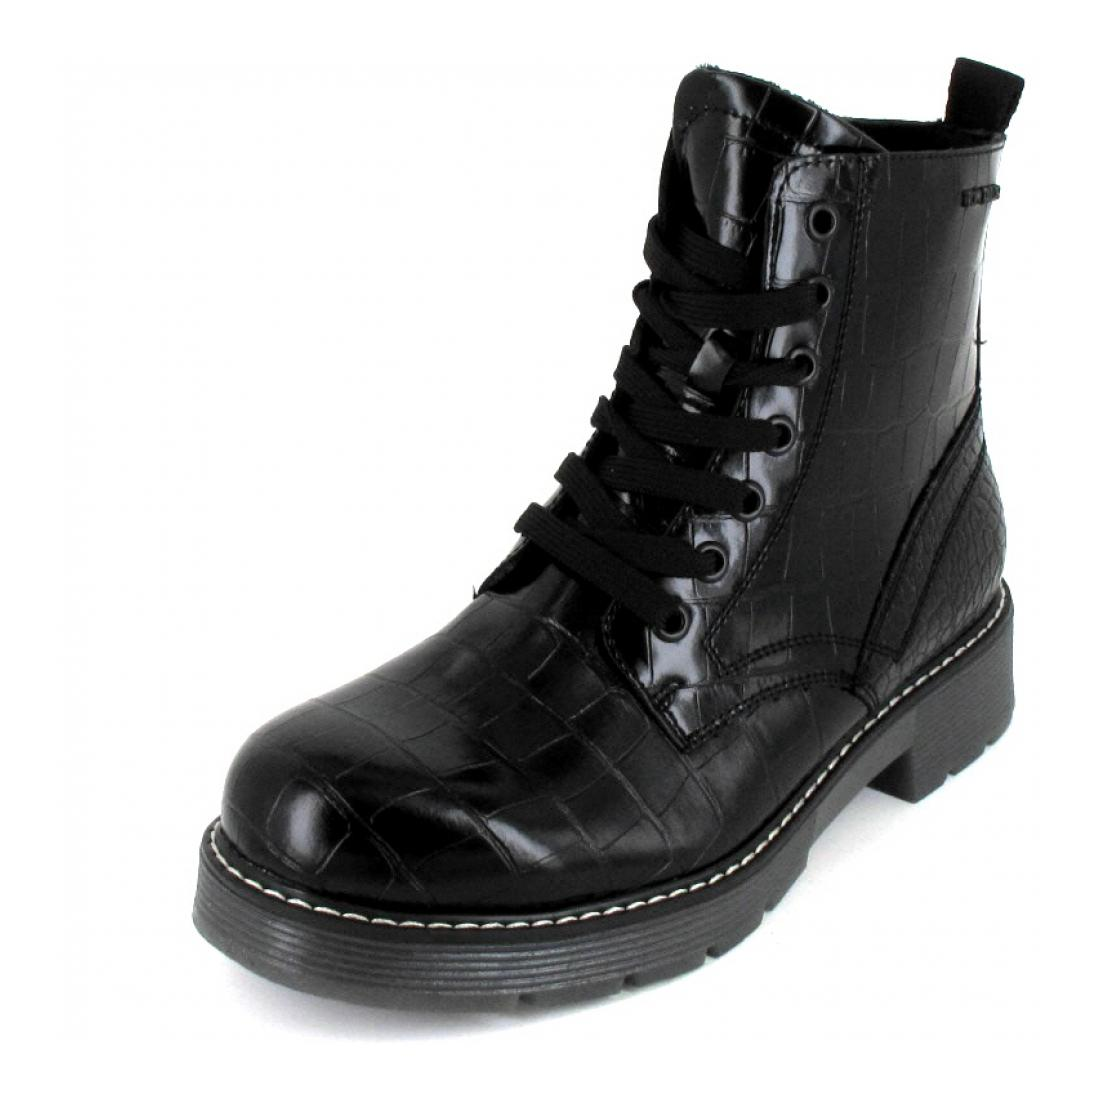 Tom Tailor Boots